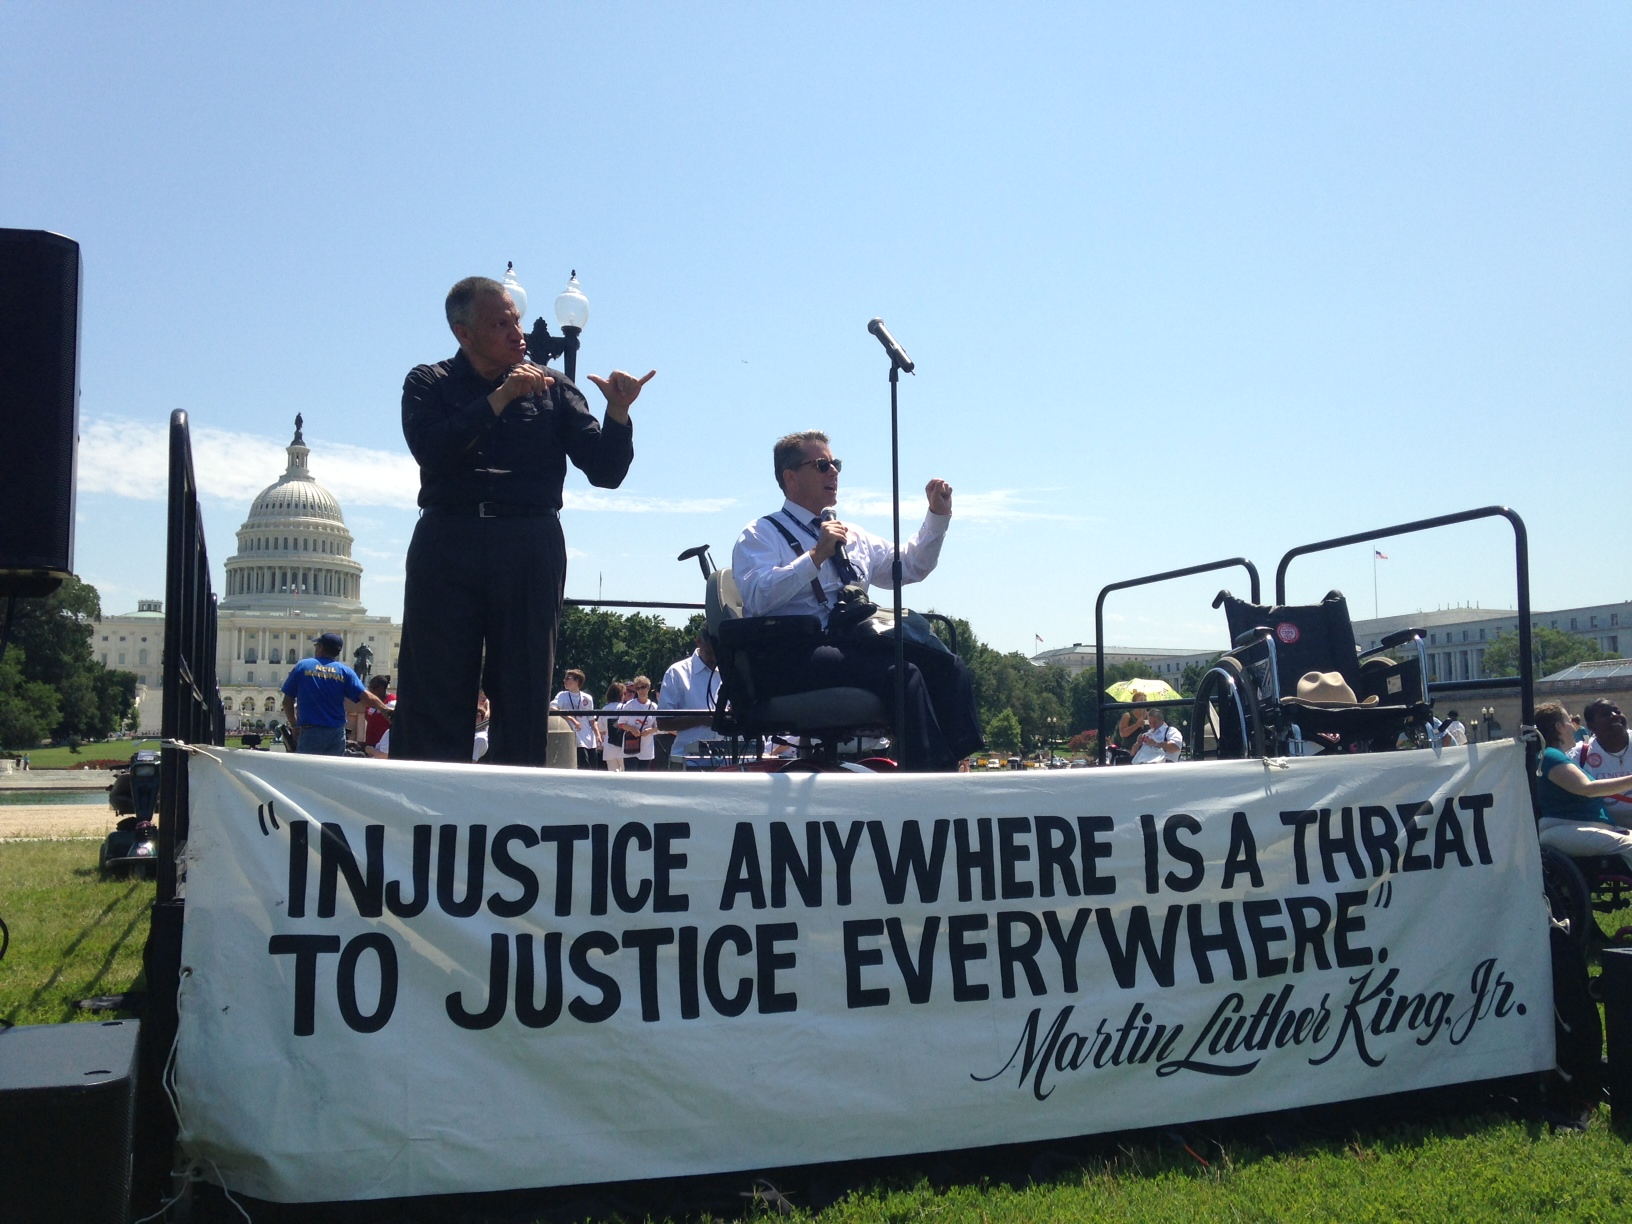 On an open air stage, a man in a wheelchair speaks into a mic with his fist raised while a man interprets in ASL beside him